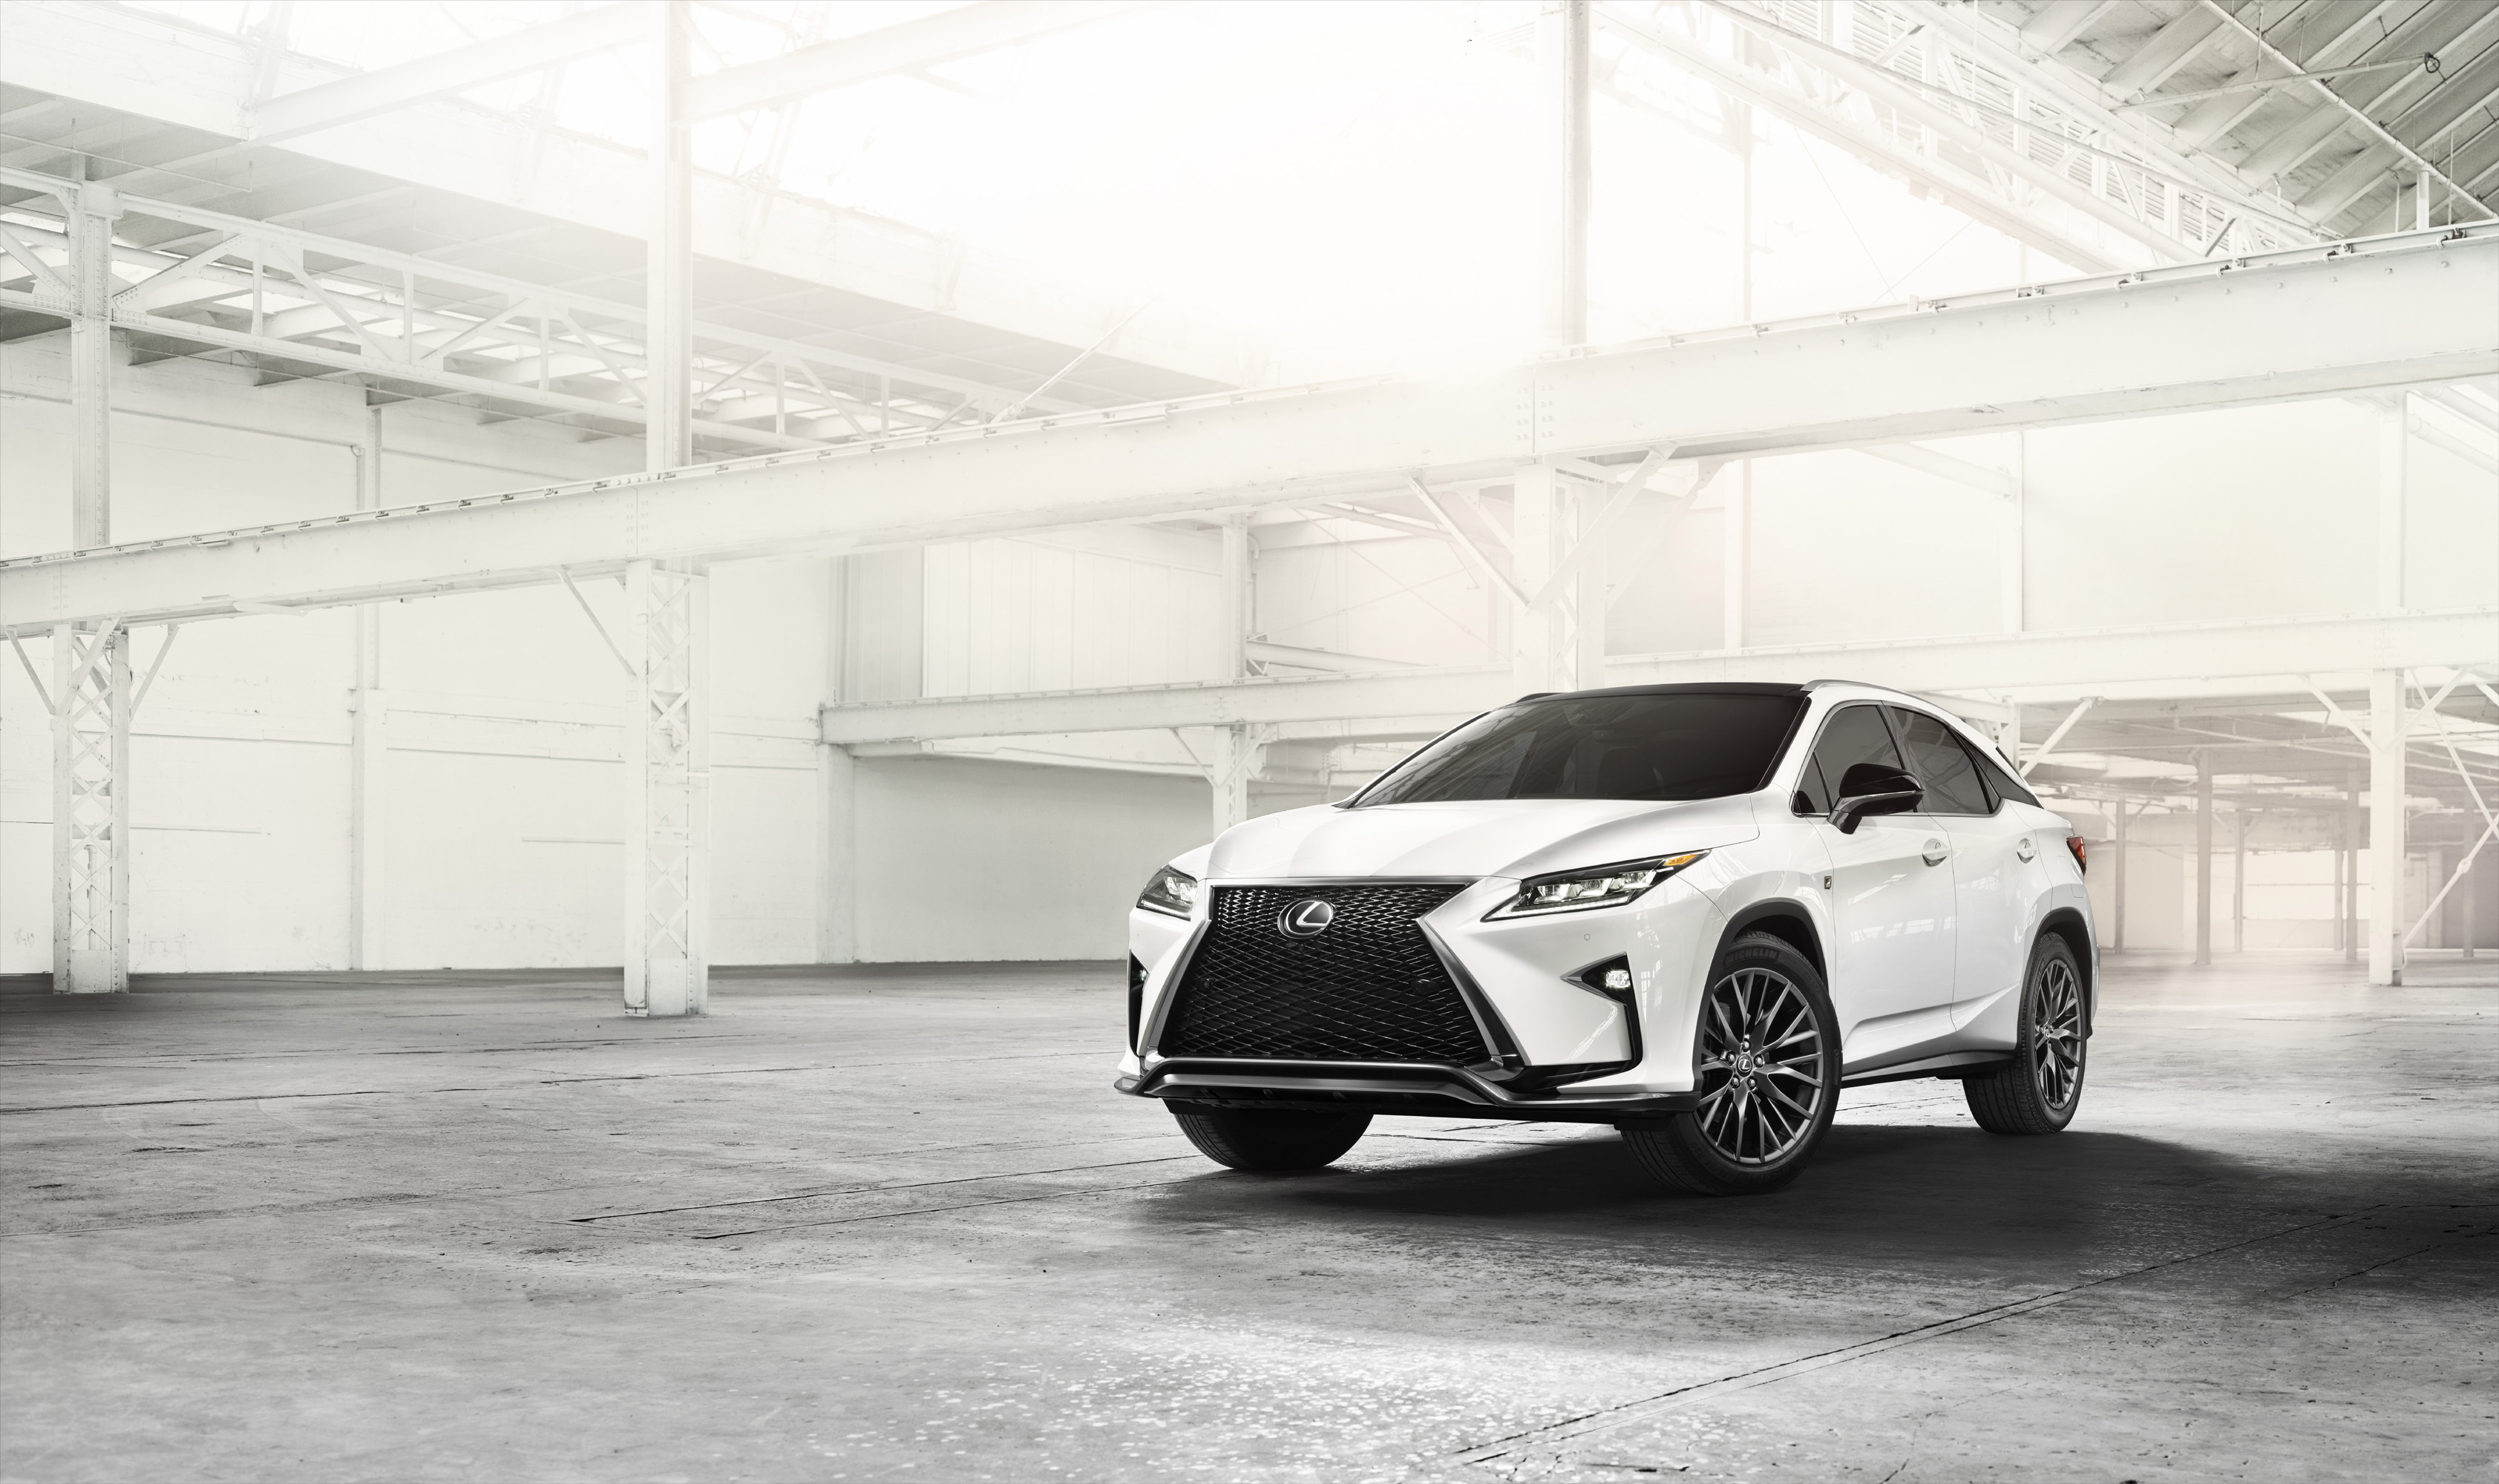 The All New 2016 Lexus RX Makes Global Debut at the New York